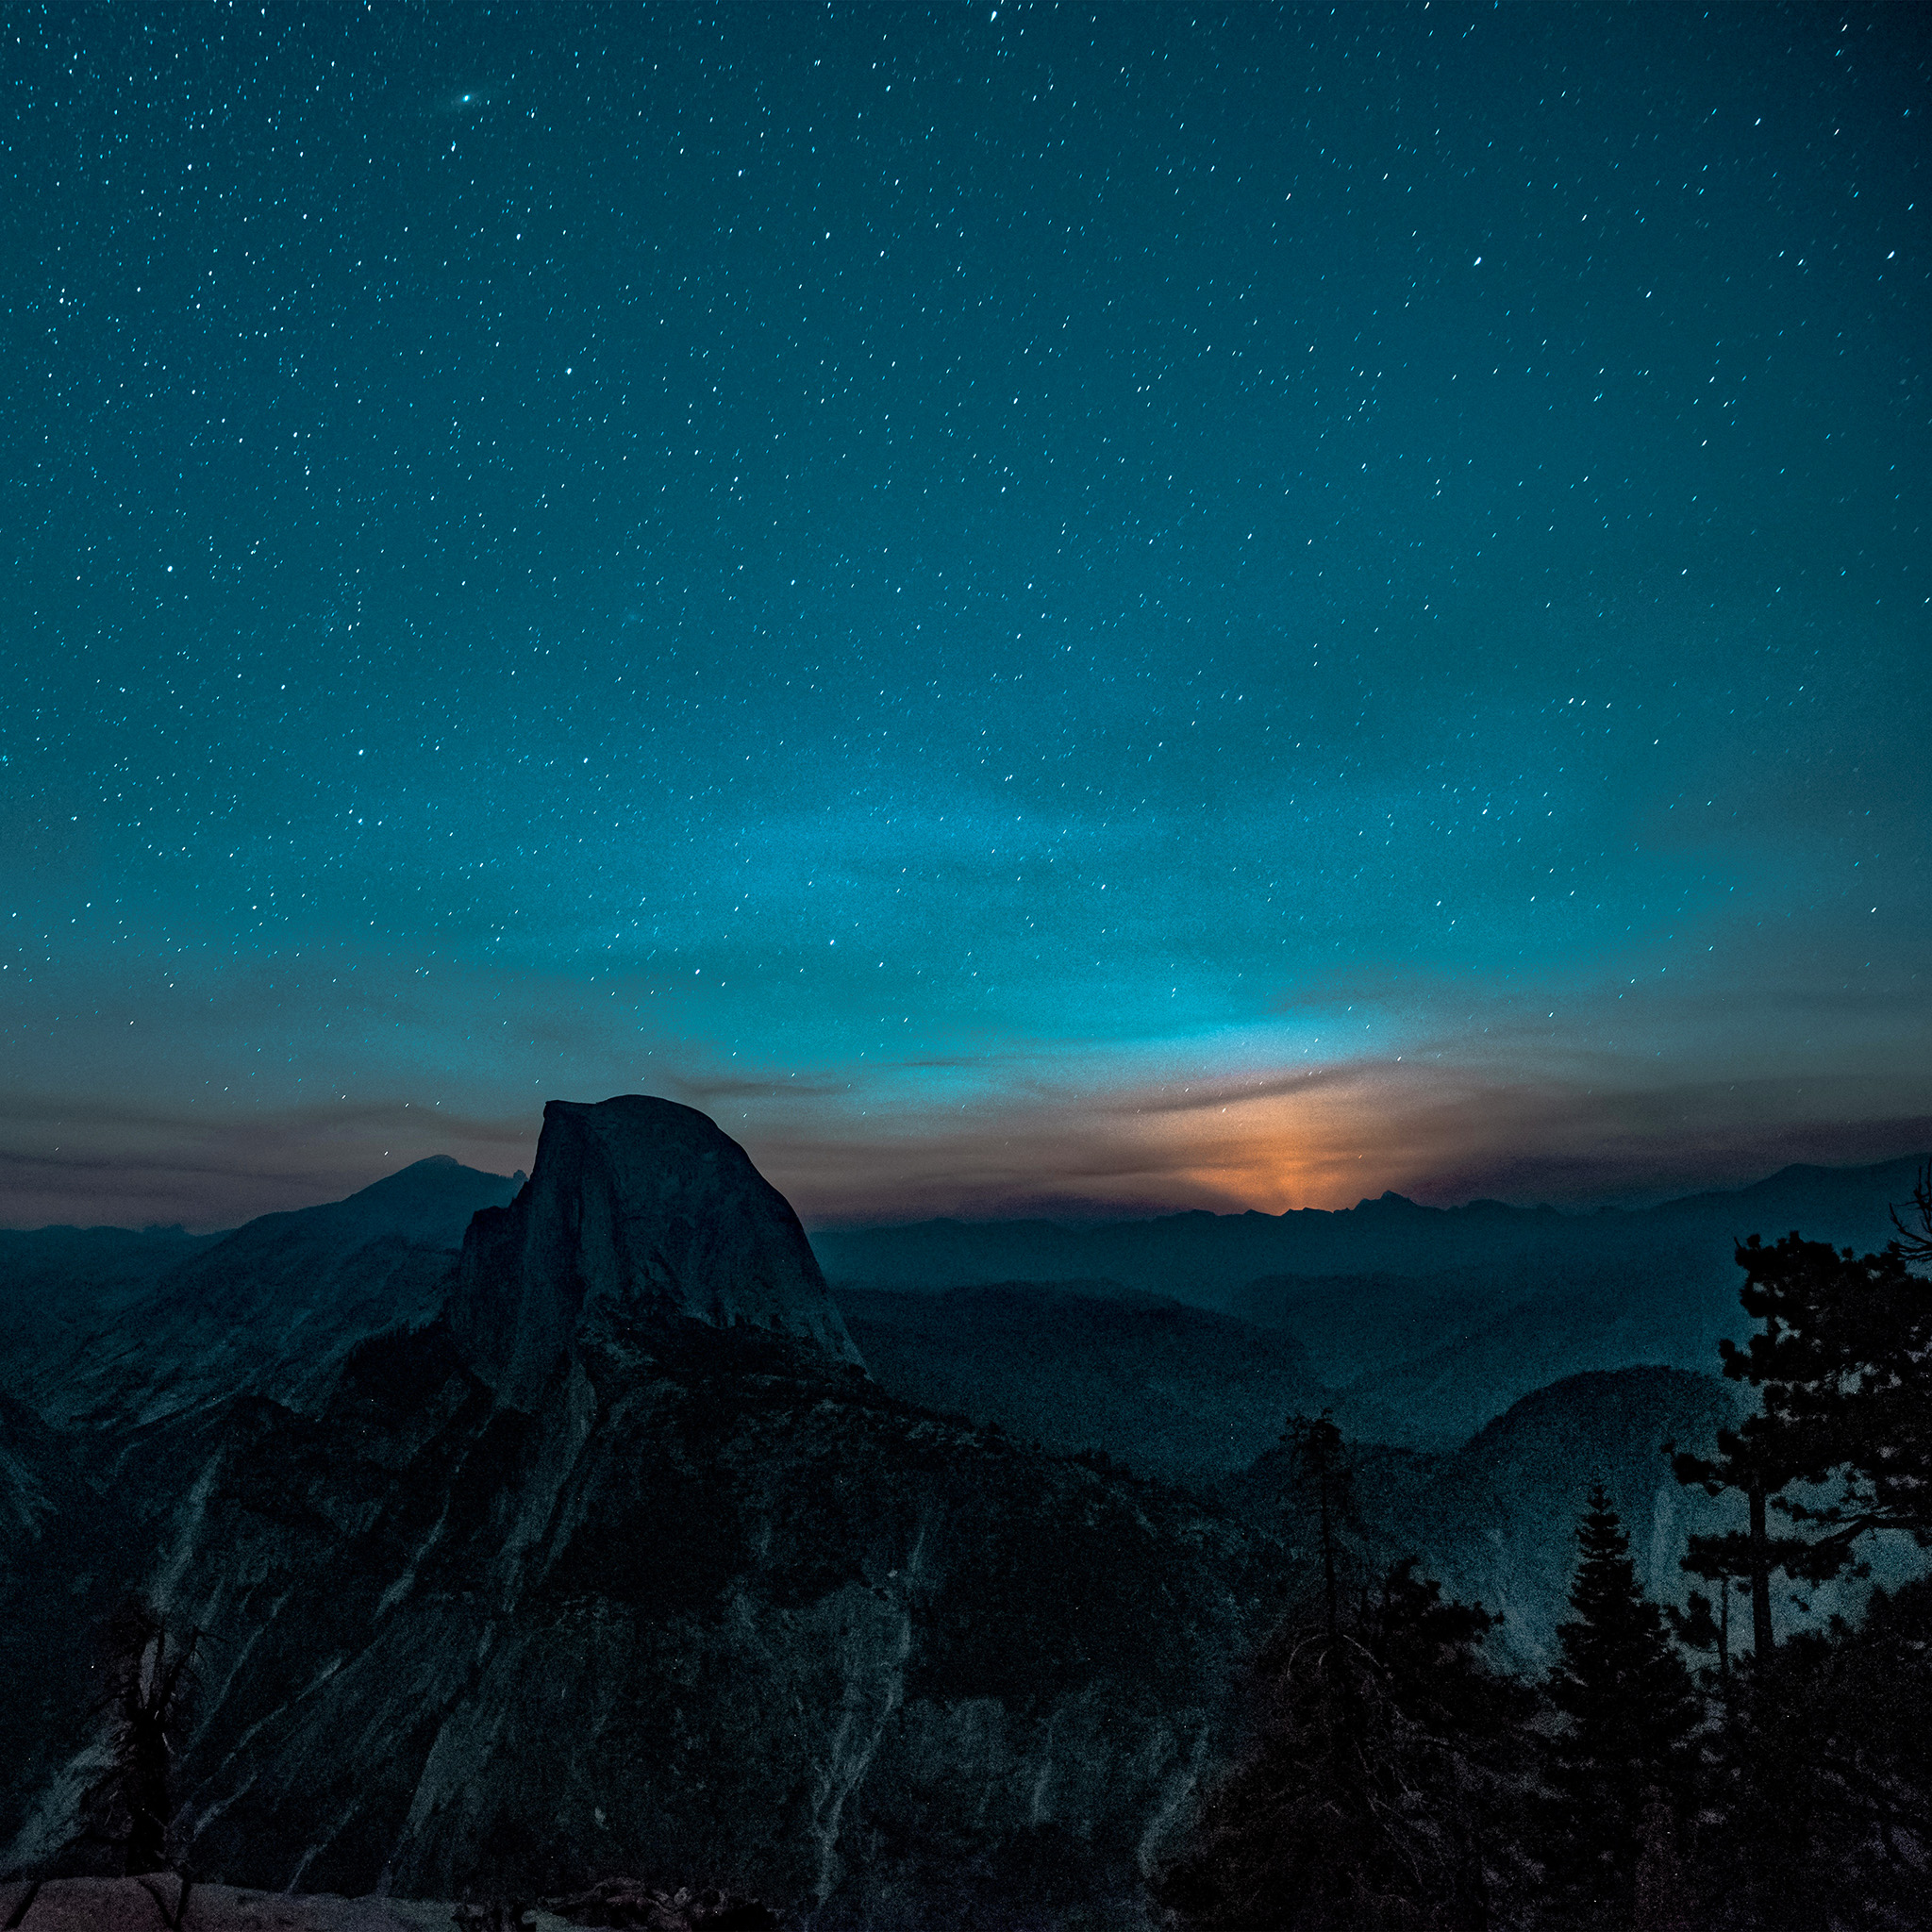 Beautiful Car Wallpaper Background Ns52 Mountain Night Sky Star Space Nature Wallpaper